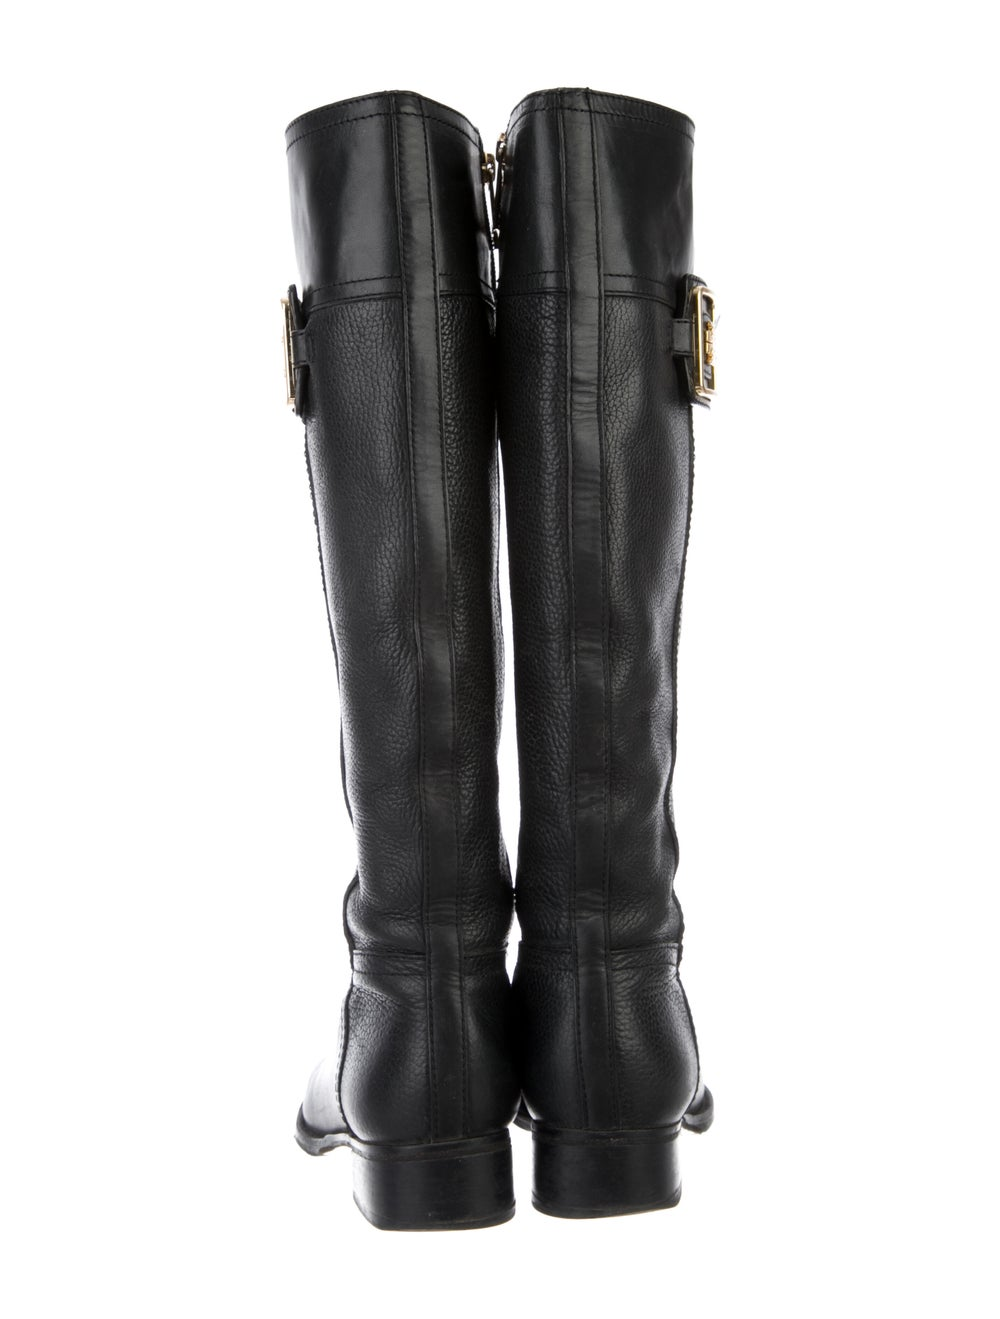 Tory Burch Leather Riding Boots Black - image 4